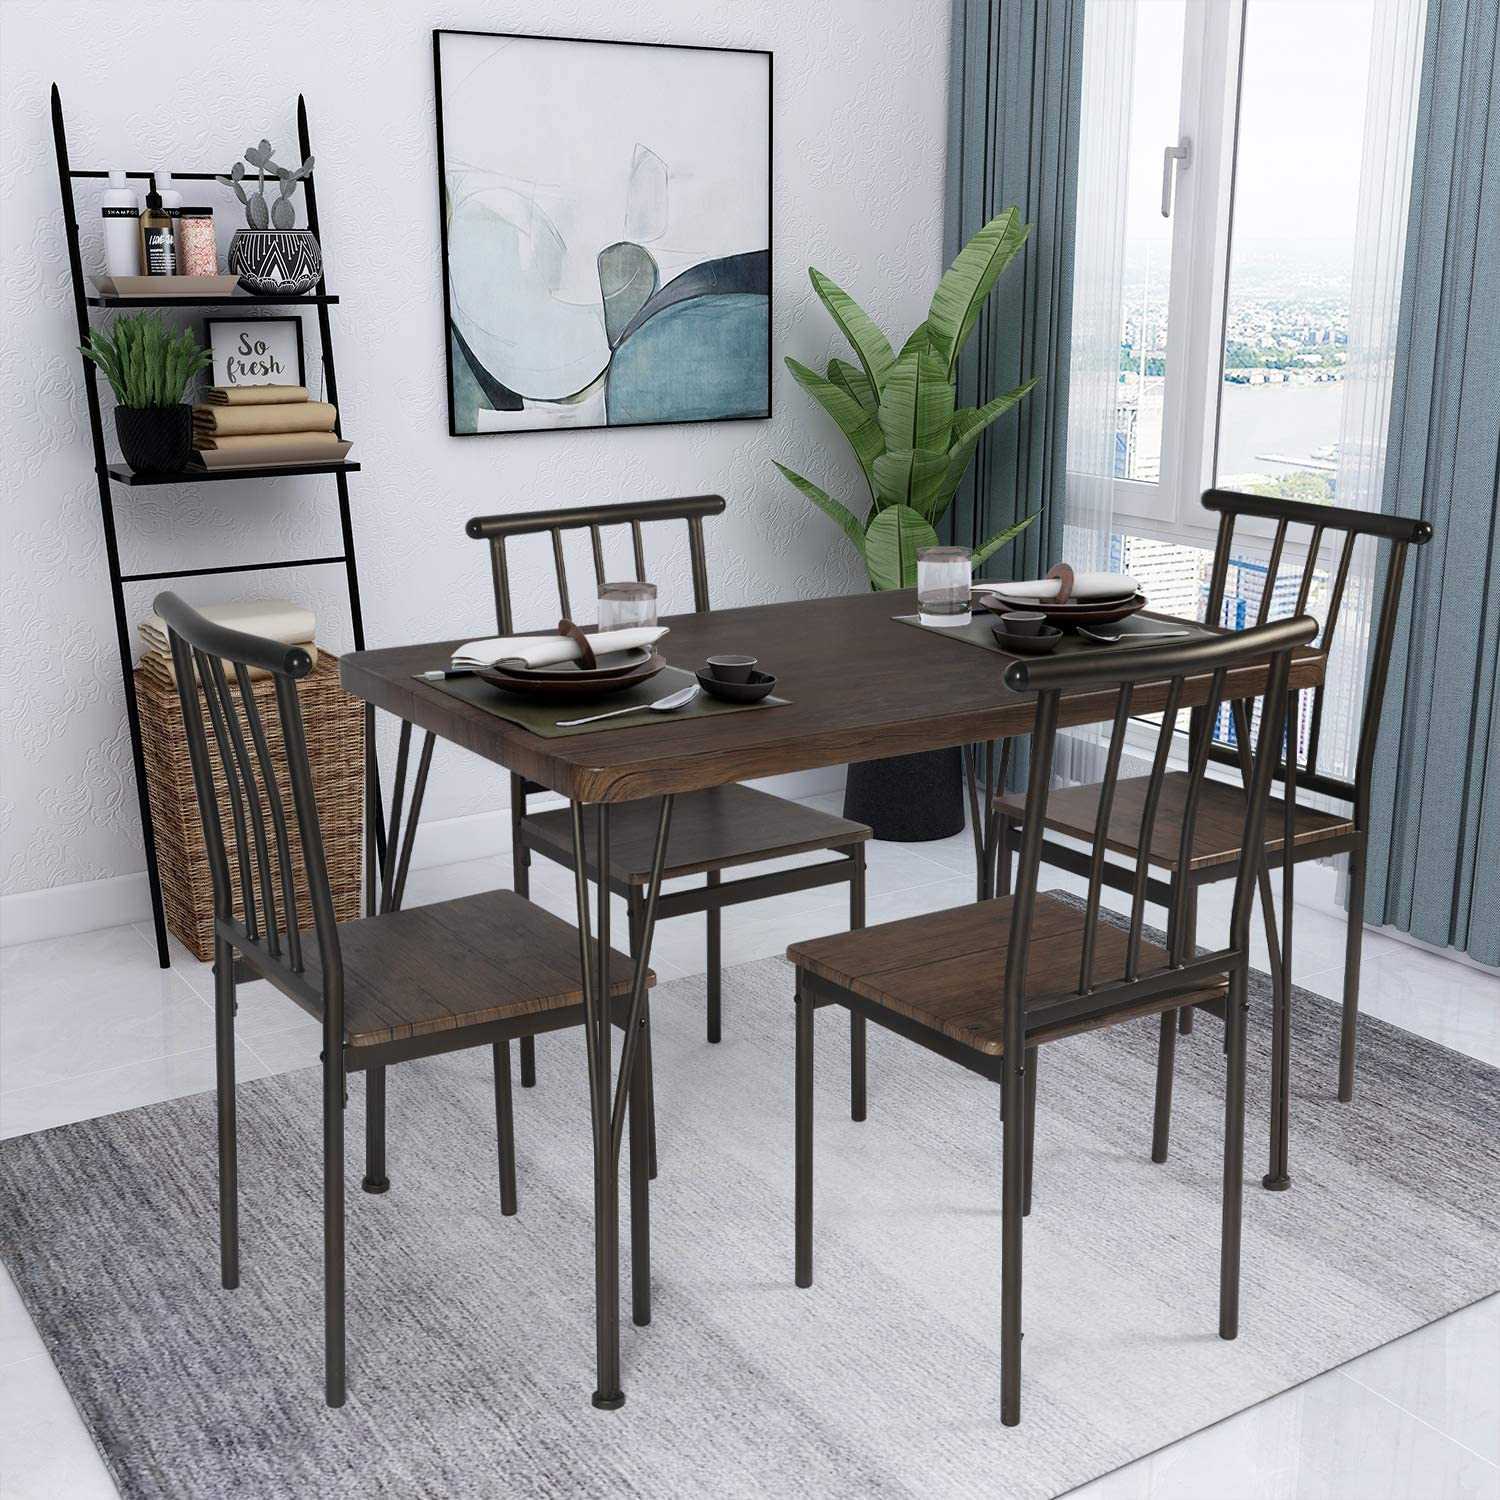 Buy OKL 9 Piece Dining Table Set Wooden Kitchen Table 9 Table 9 ...